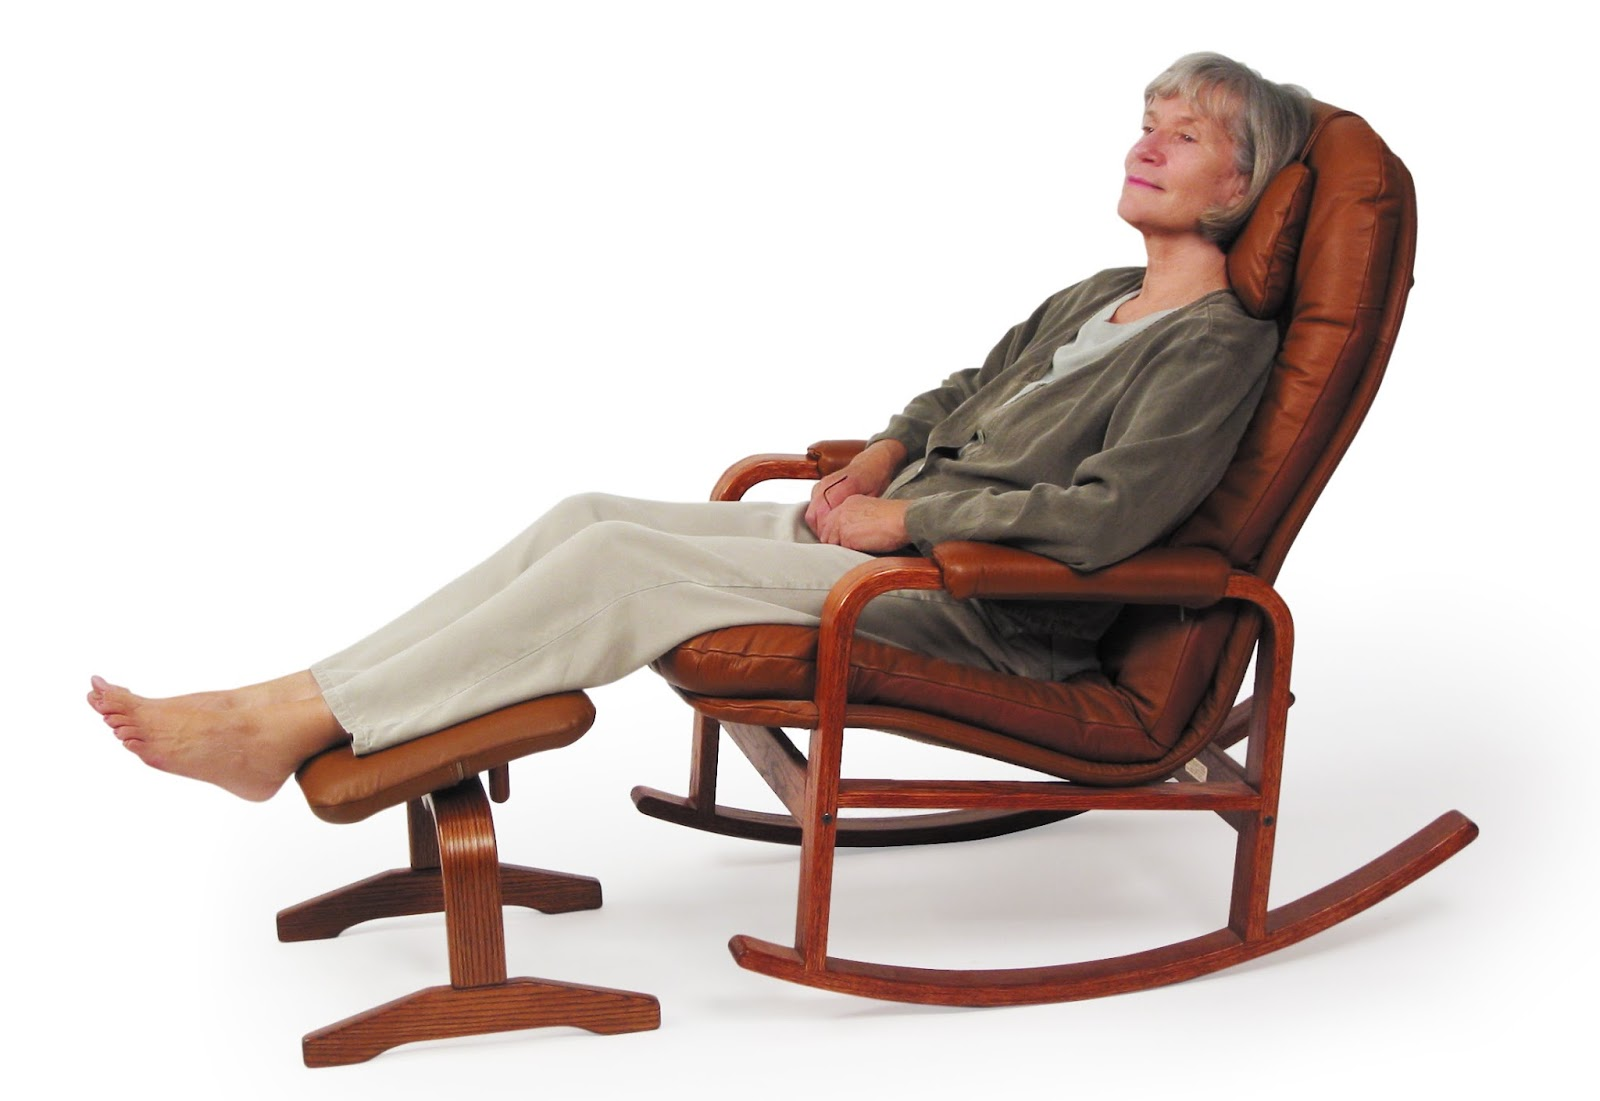 Get the best rocking chair for bad back at brigger furniture for Best furniture for bad backs